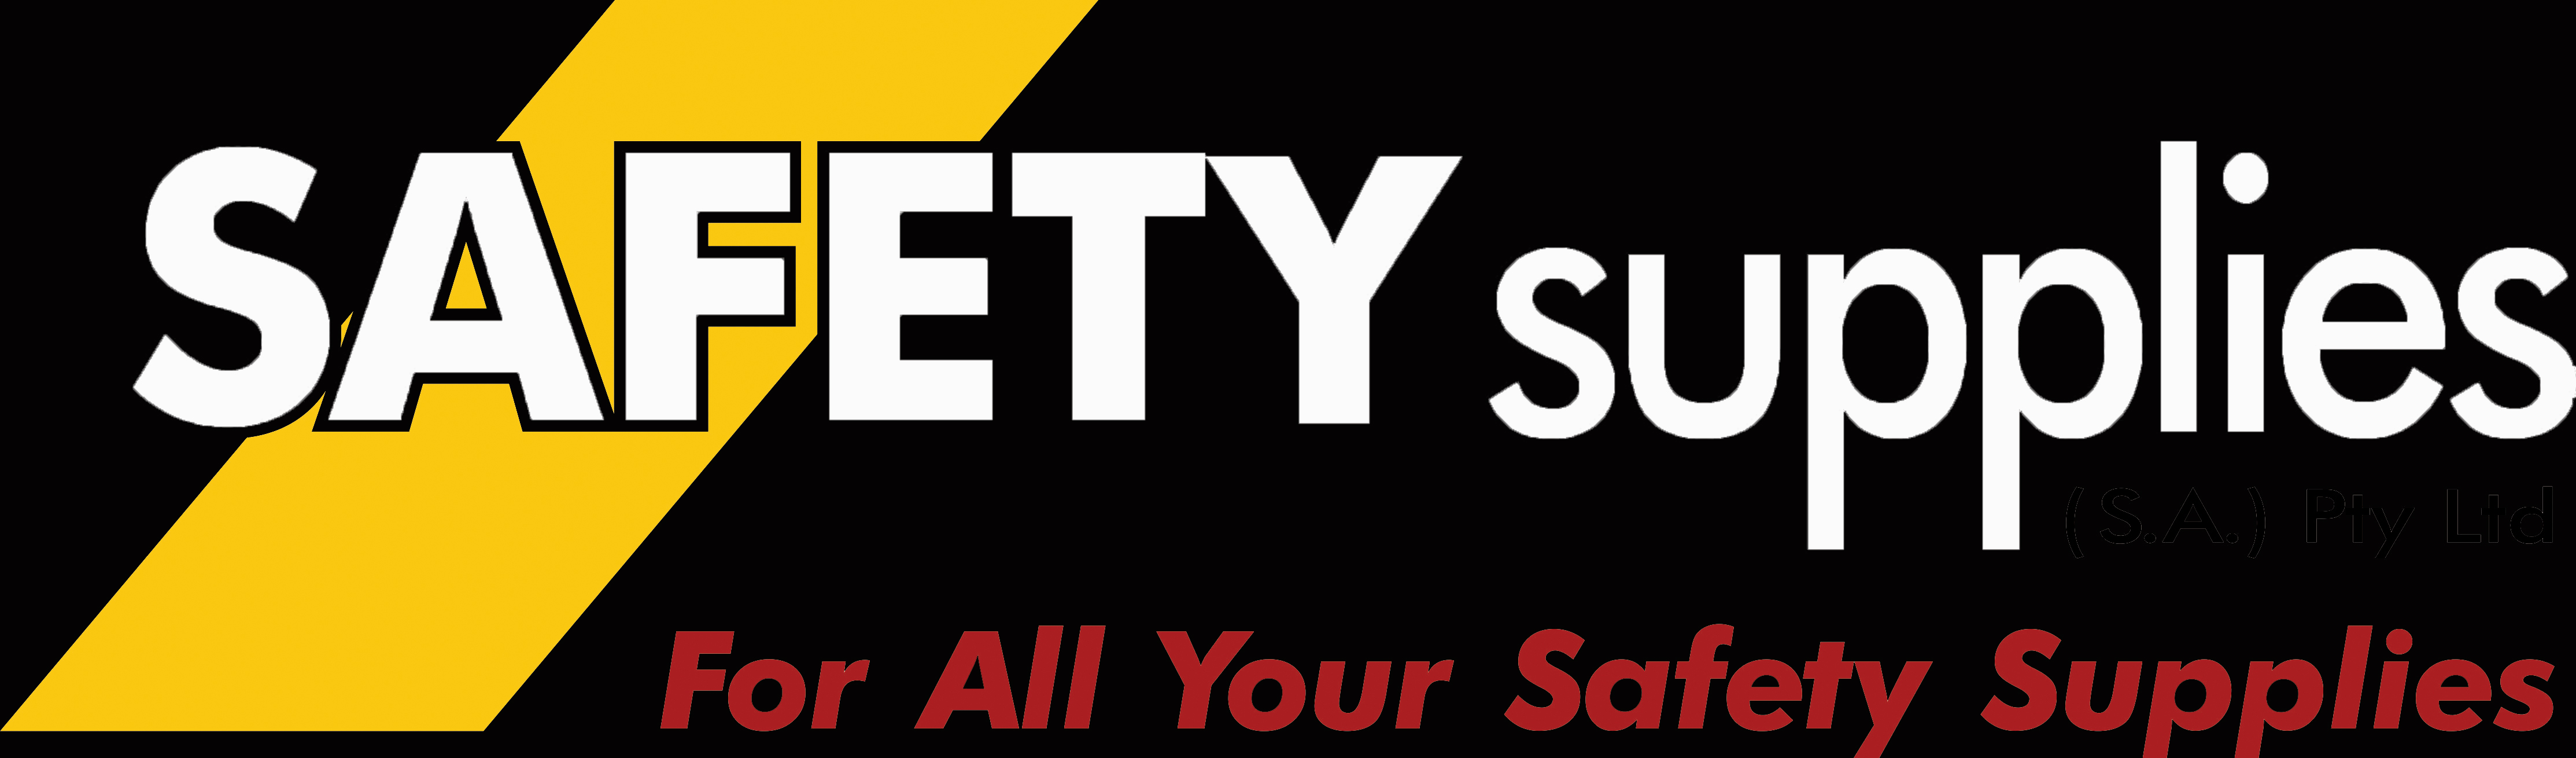 a2f6a6cc15 Unisafe Browguard   Visor Complete Safety Supplies SA - Sales and Service  in Adelaide and Online Buy online or shop in Adelaide at Safety Supplies SA